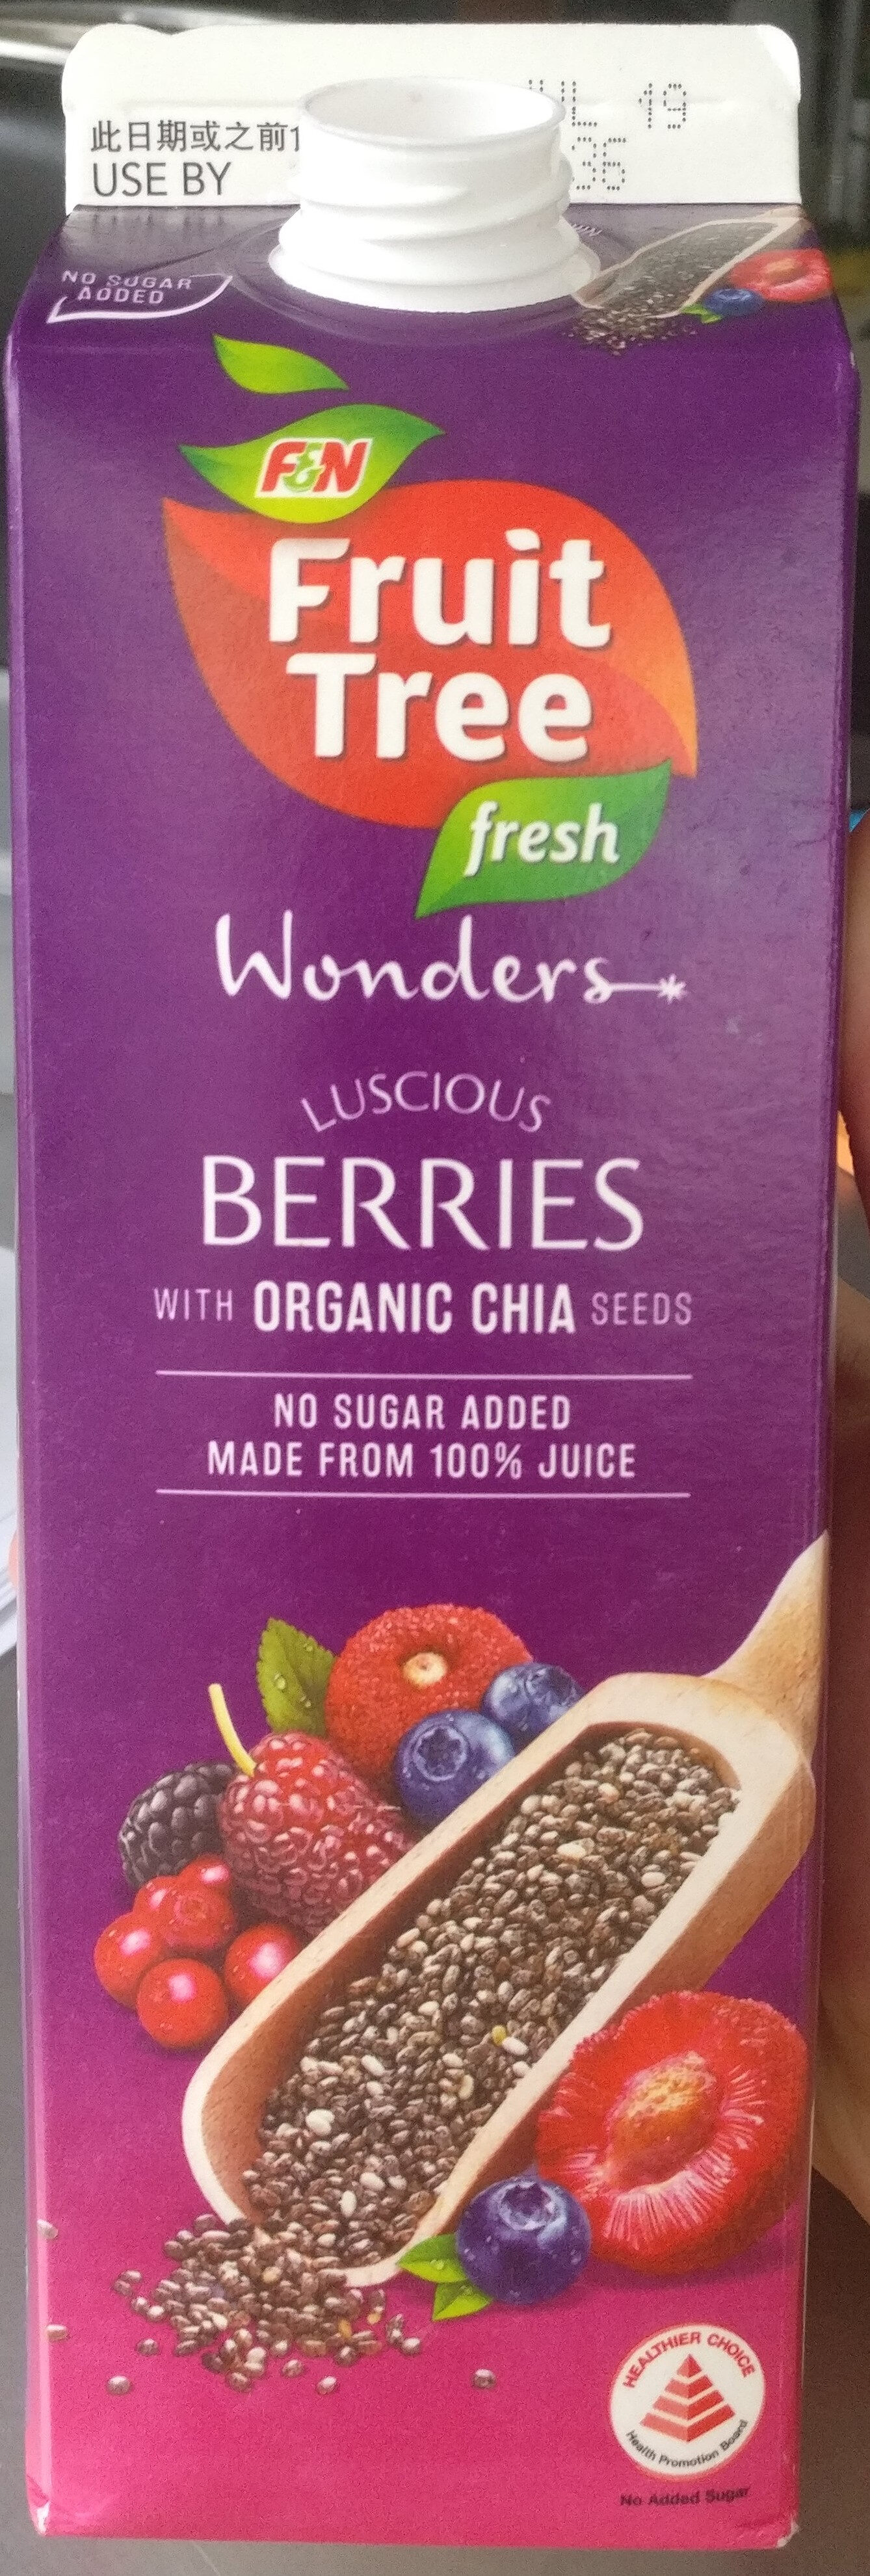 Berries Mixed Juice Drink with Organic Chia Seeds - Product